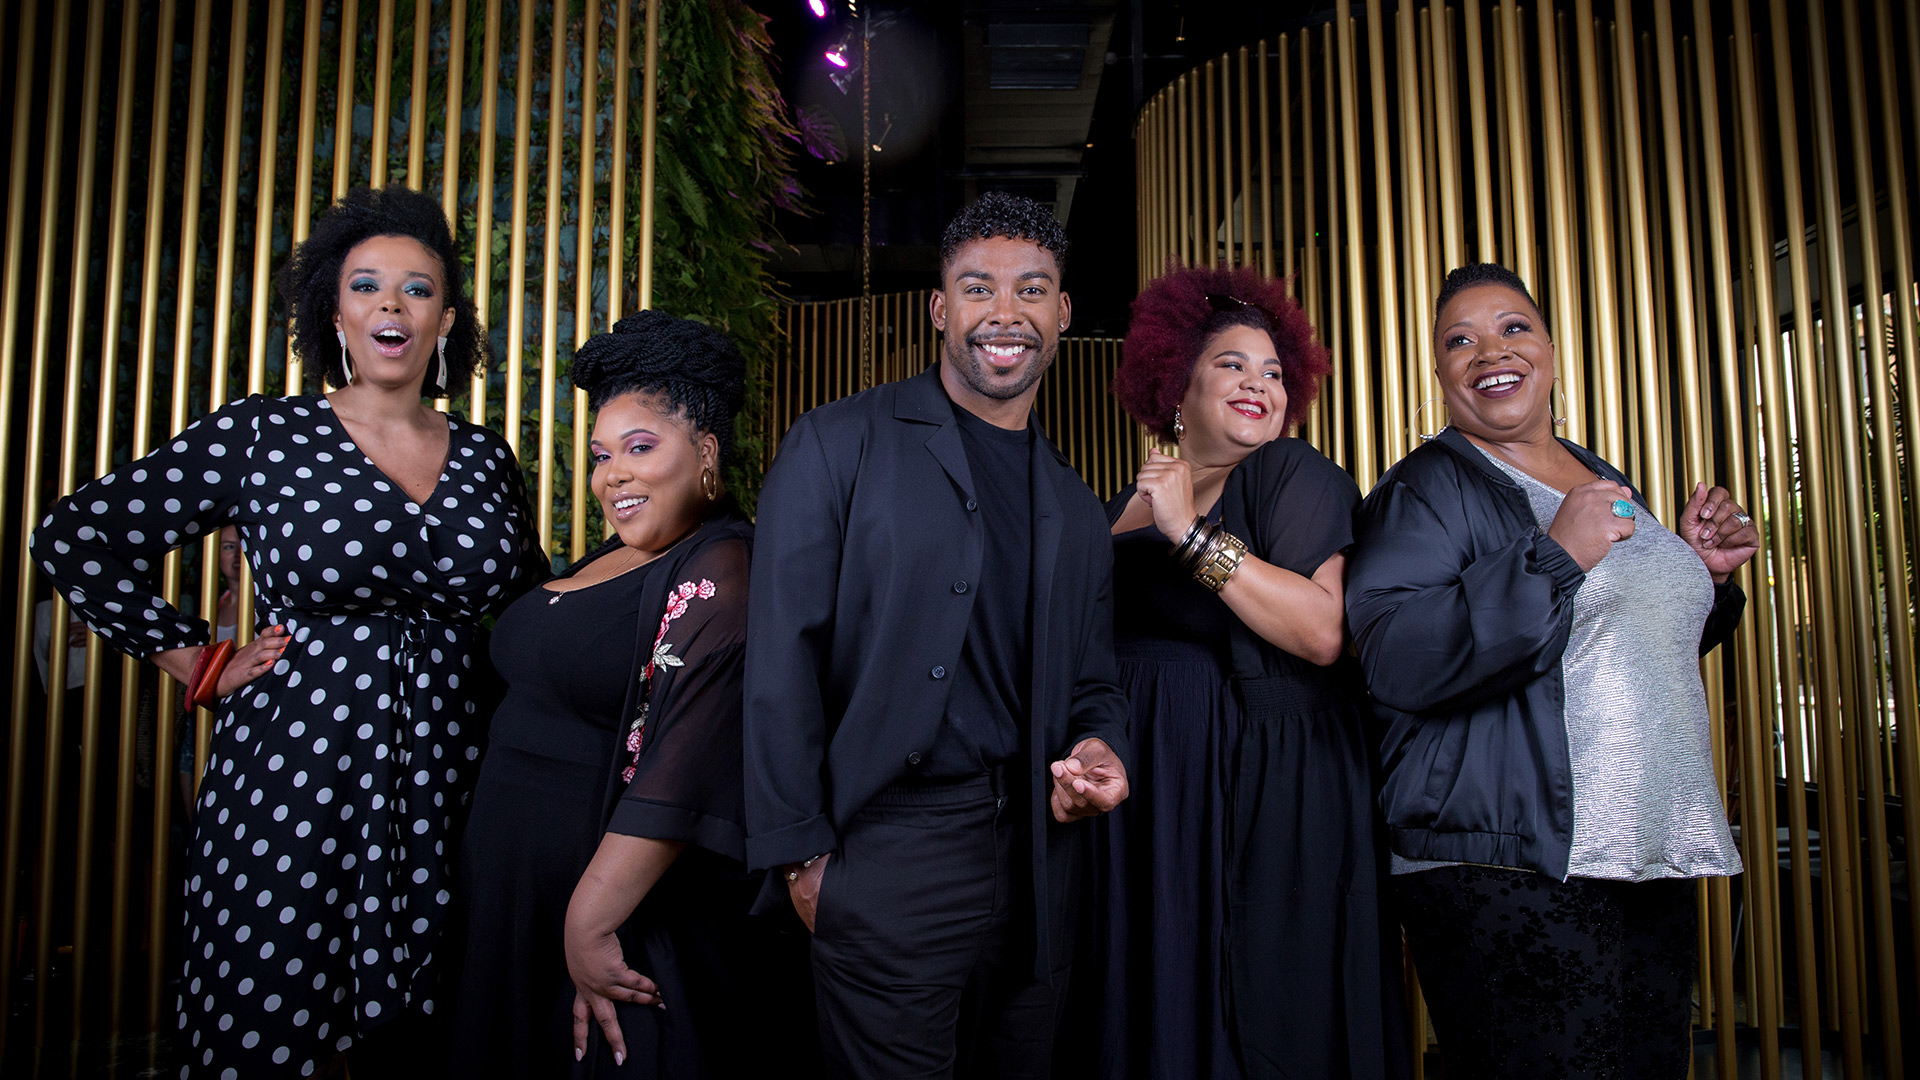 Blog Images John Lundvik Eurovision (Photo: Miriam Alster)